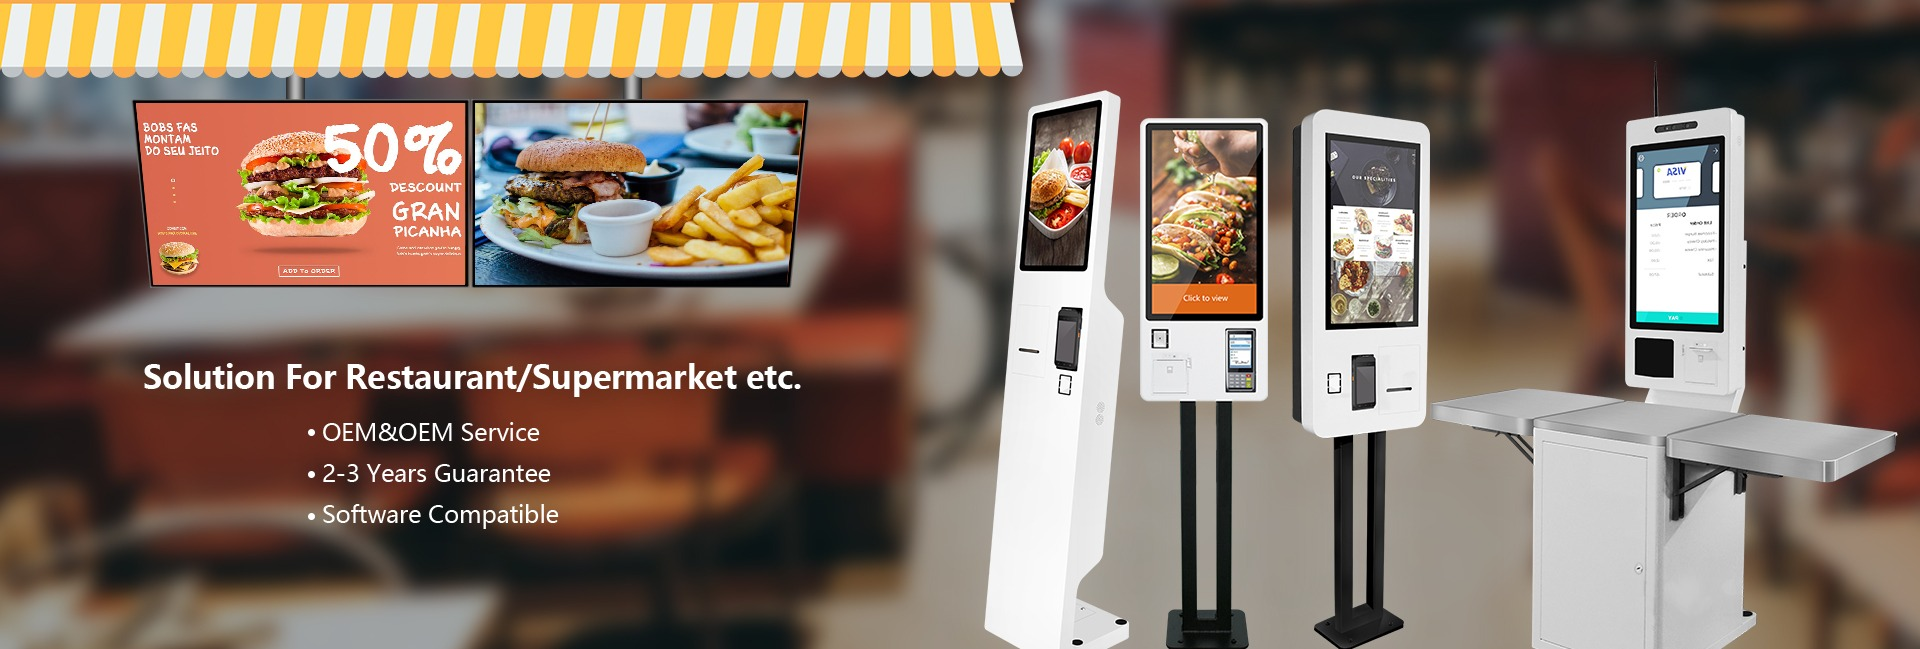 takeaway epos systems Digital Screens and self order kiosk